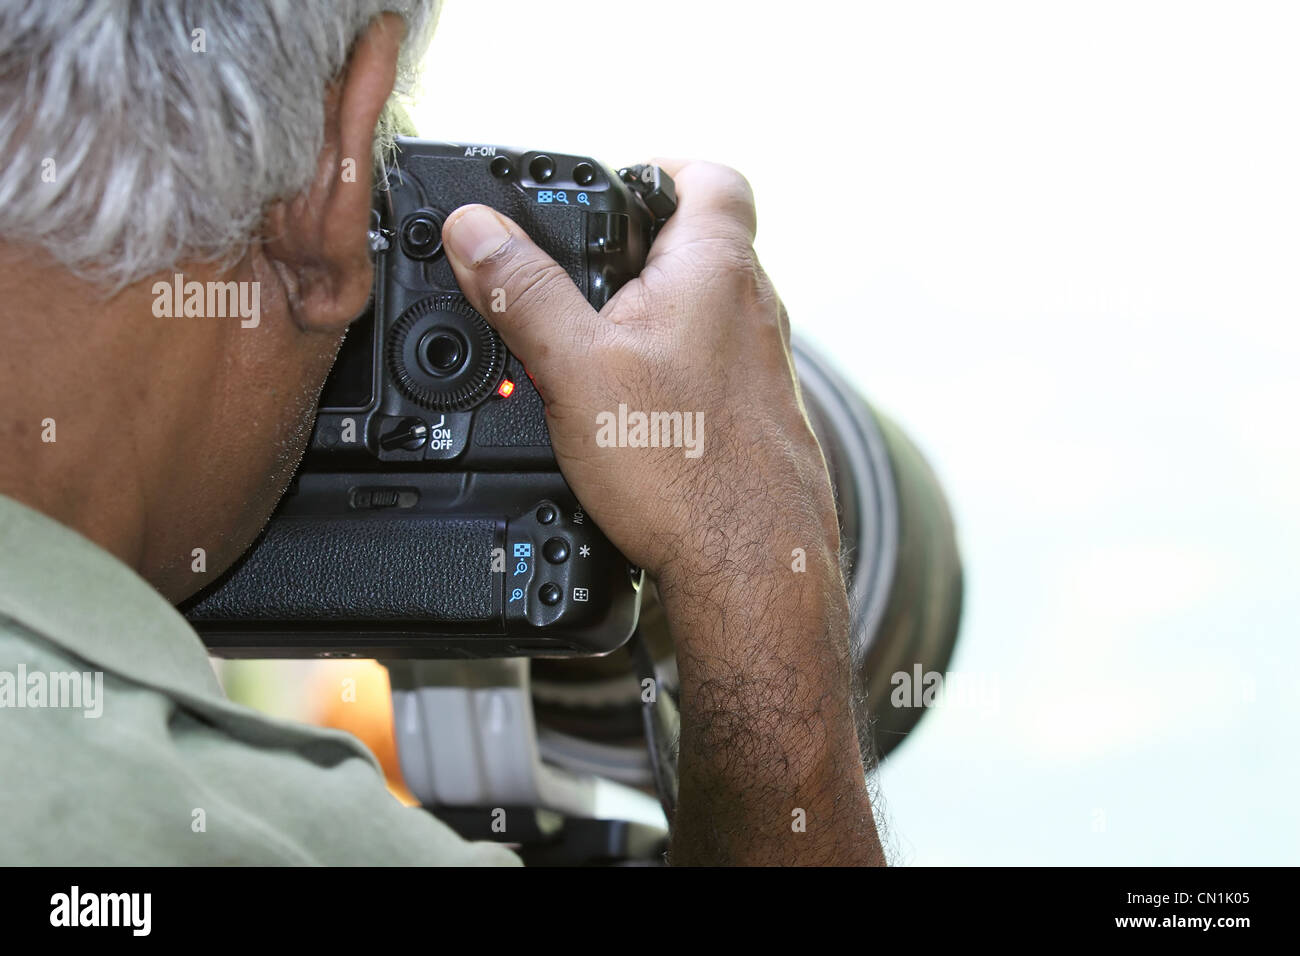 Photographer at Work - Stock Image